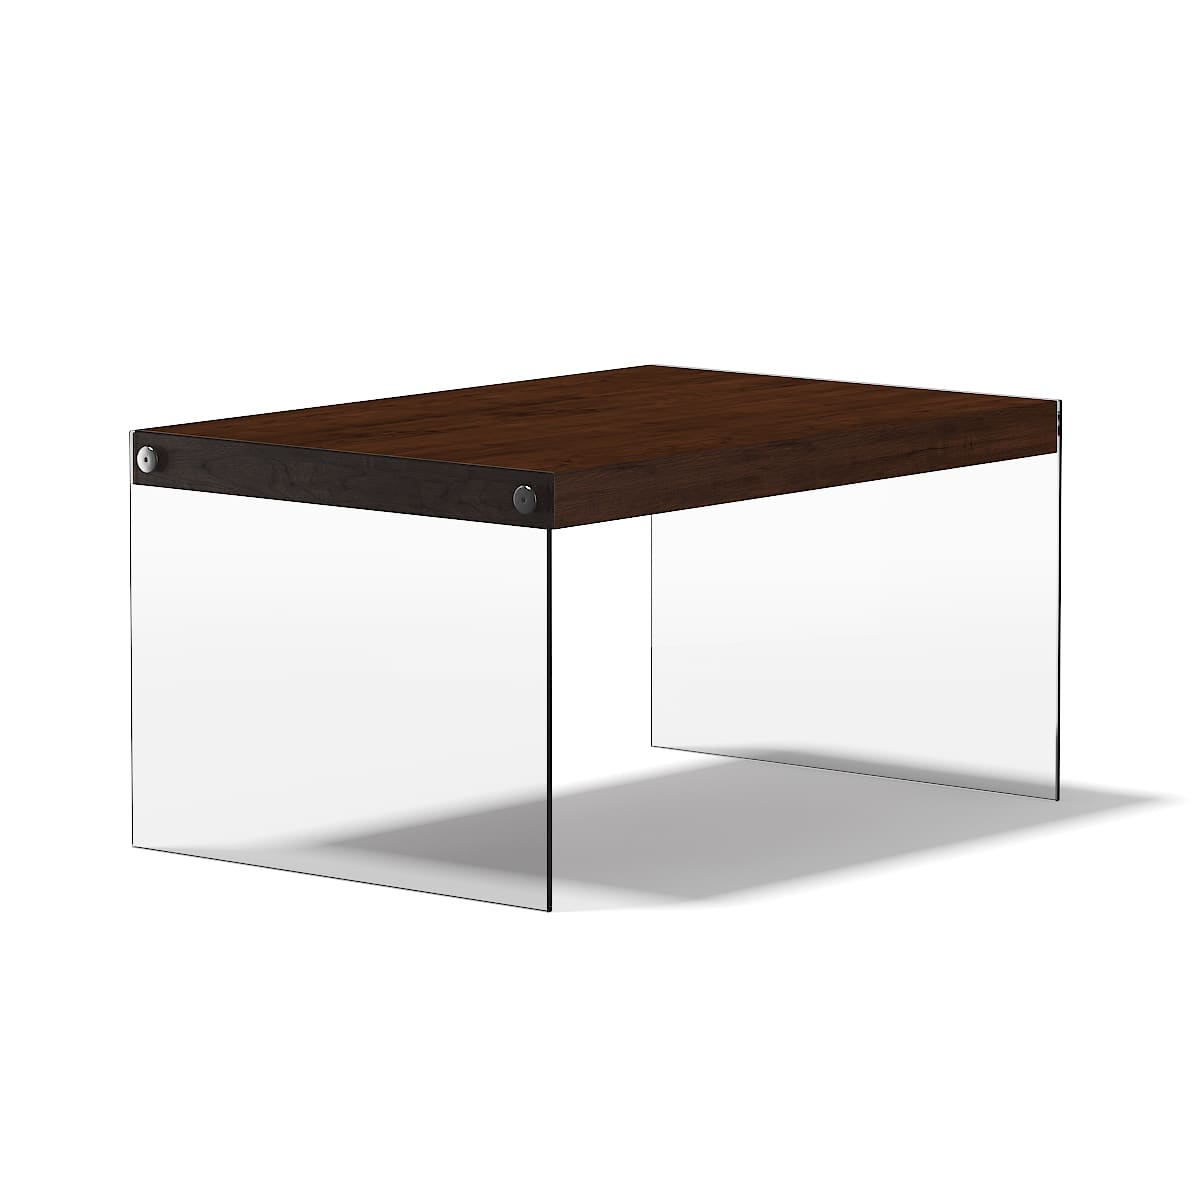 wooden coffee table with glass sides